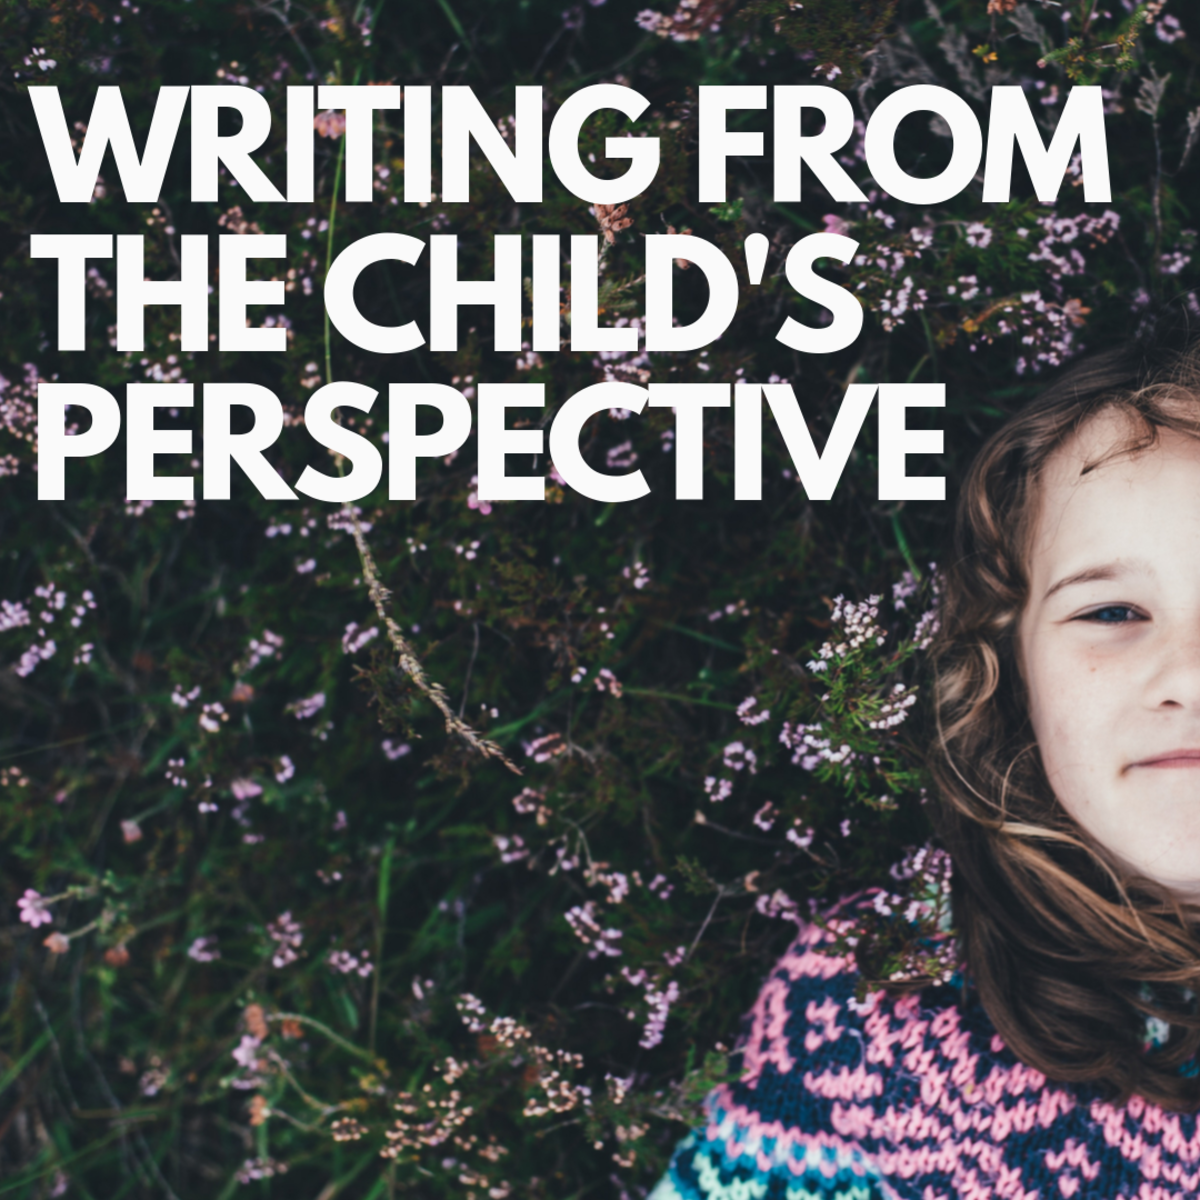 Voice: Writing From the Child's Perspective